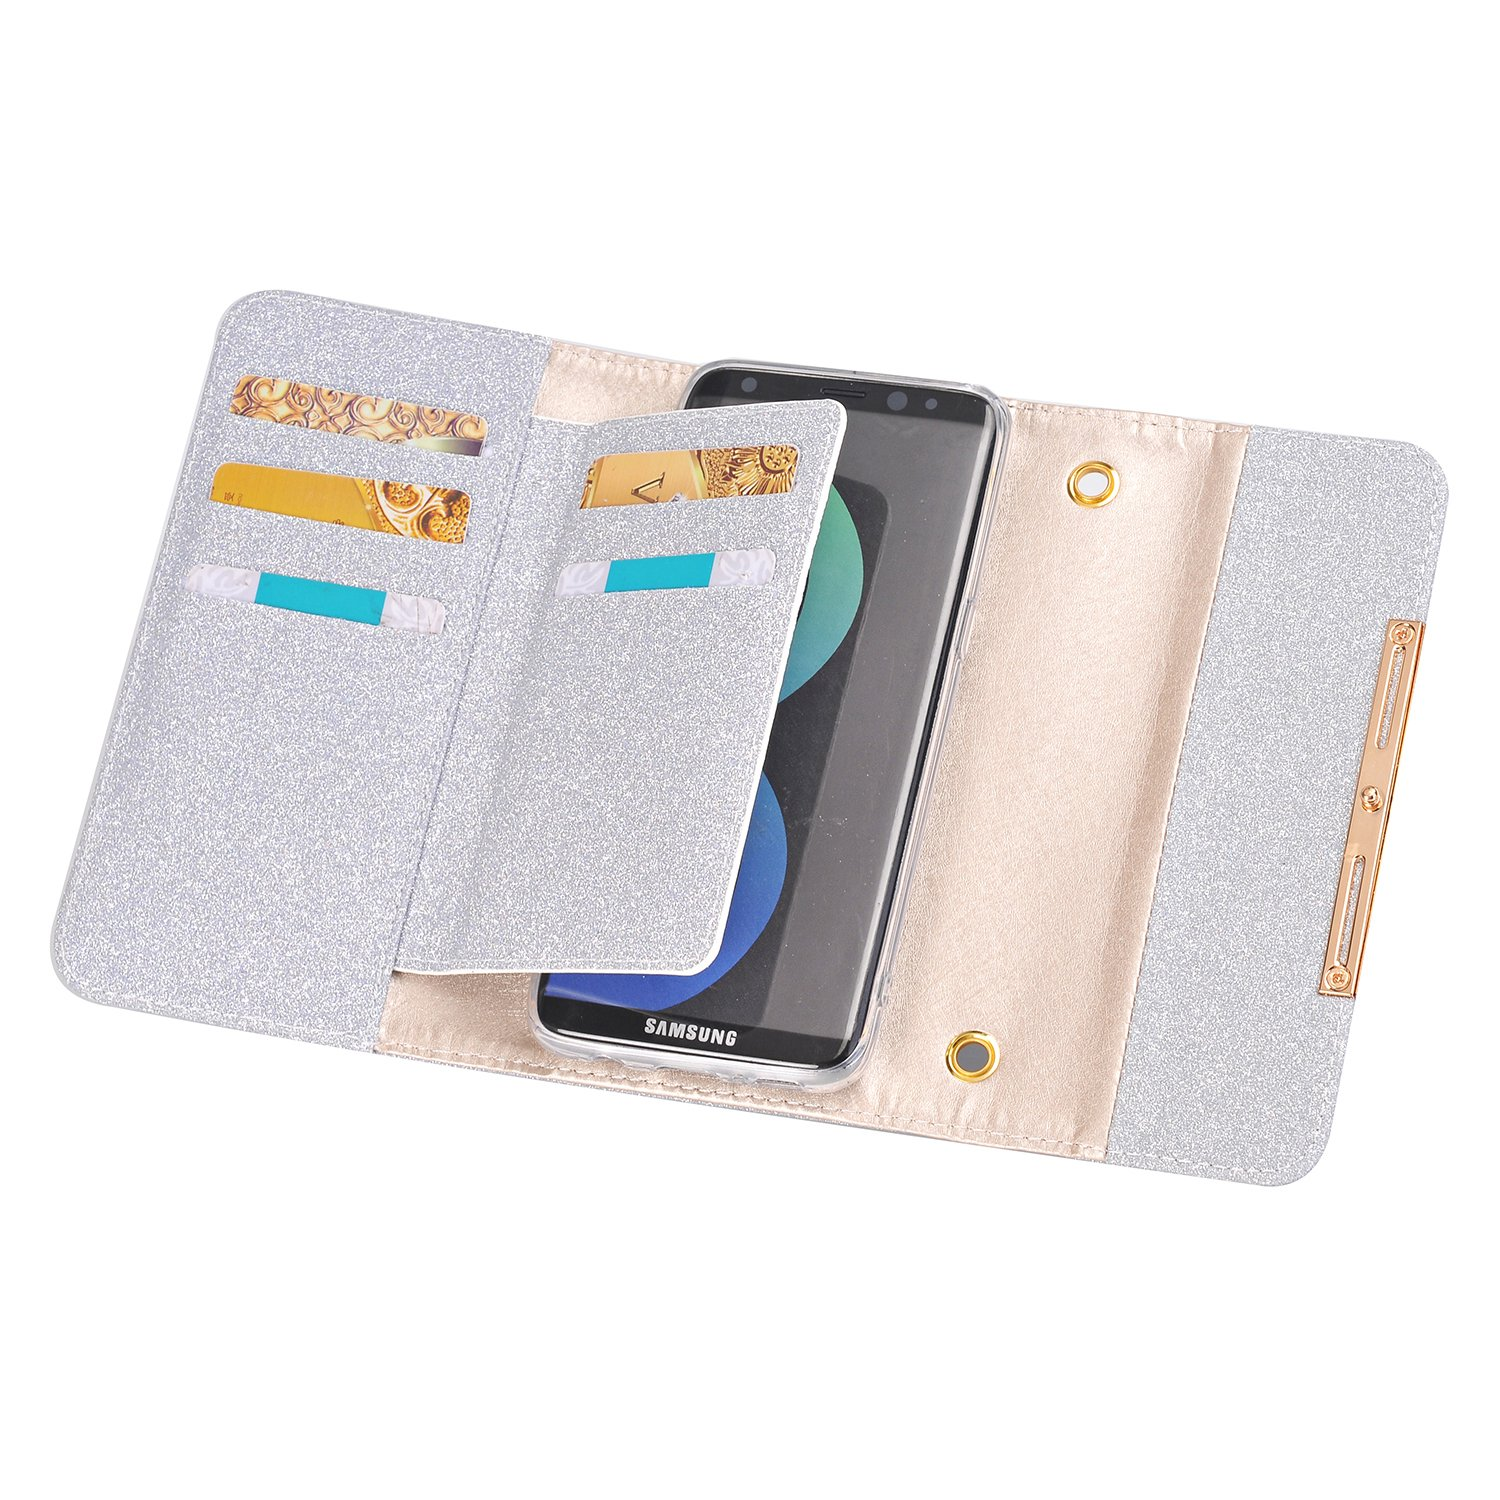 Galaxy S8 Wallet Phone Case,Women Fashion Bling Shiny PU Leather Flip Lady Multi Envelope Wristlet HandBag Clutch Wallet Case with Credit Card Holder for Galaxy S8(Grey)